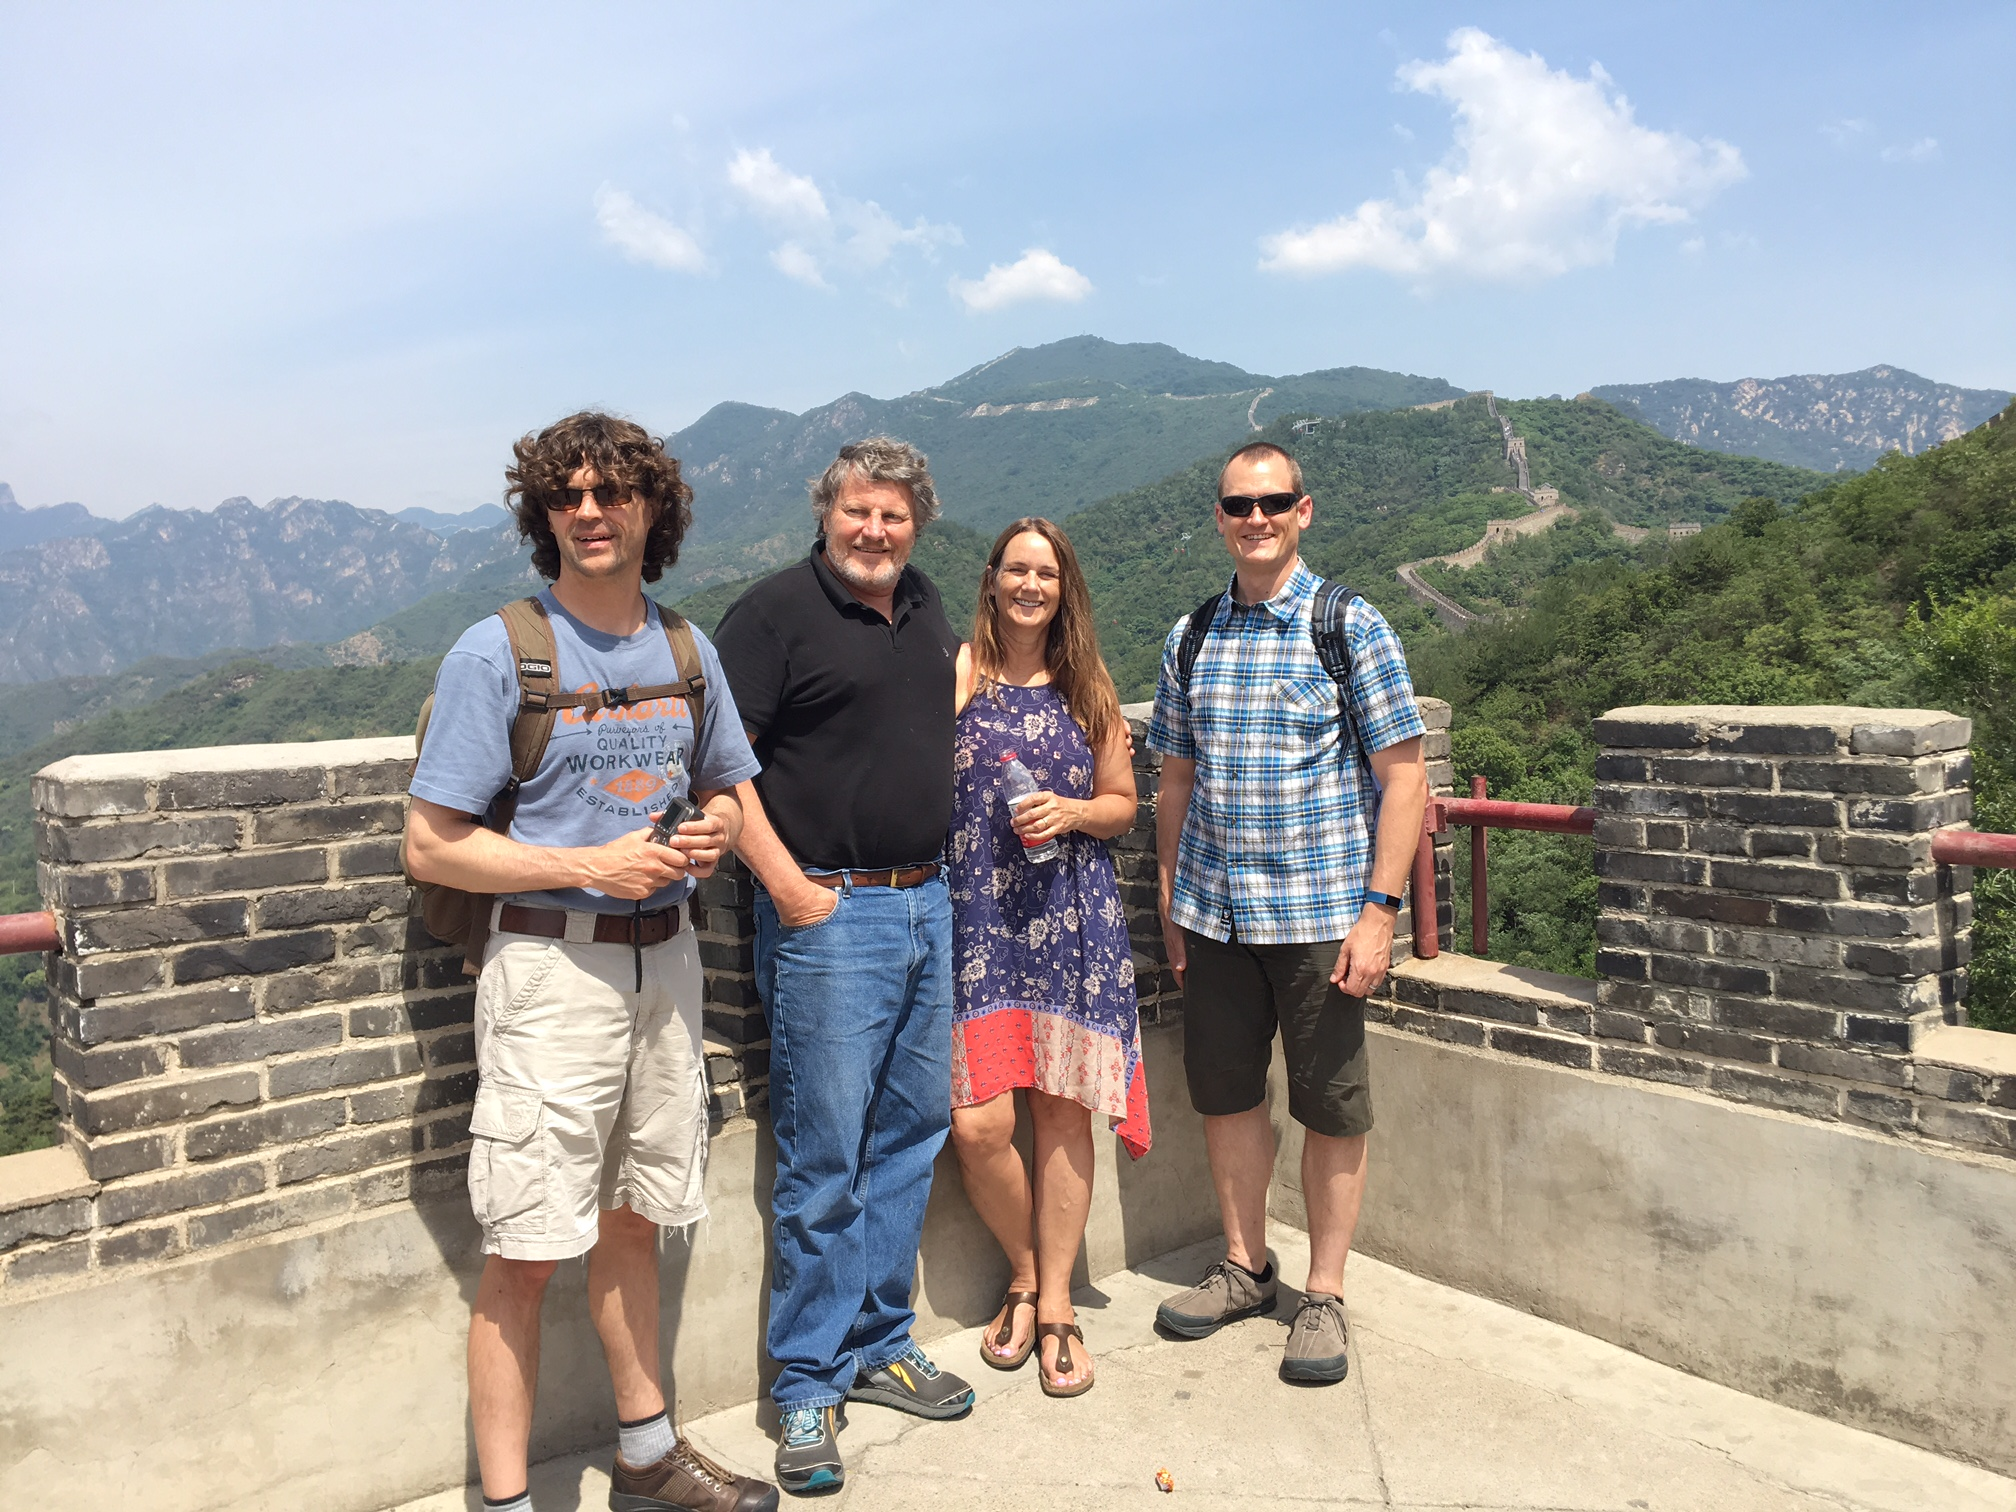 Apogee Visits Asia